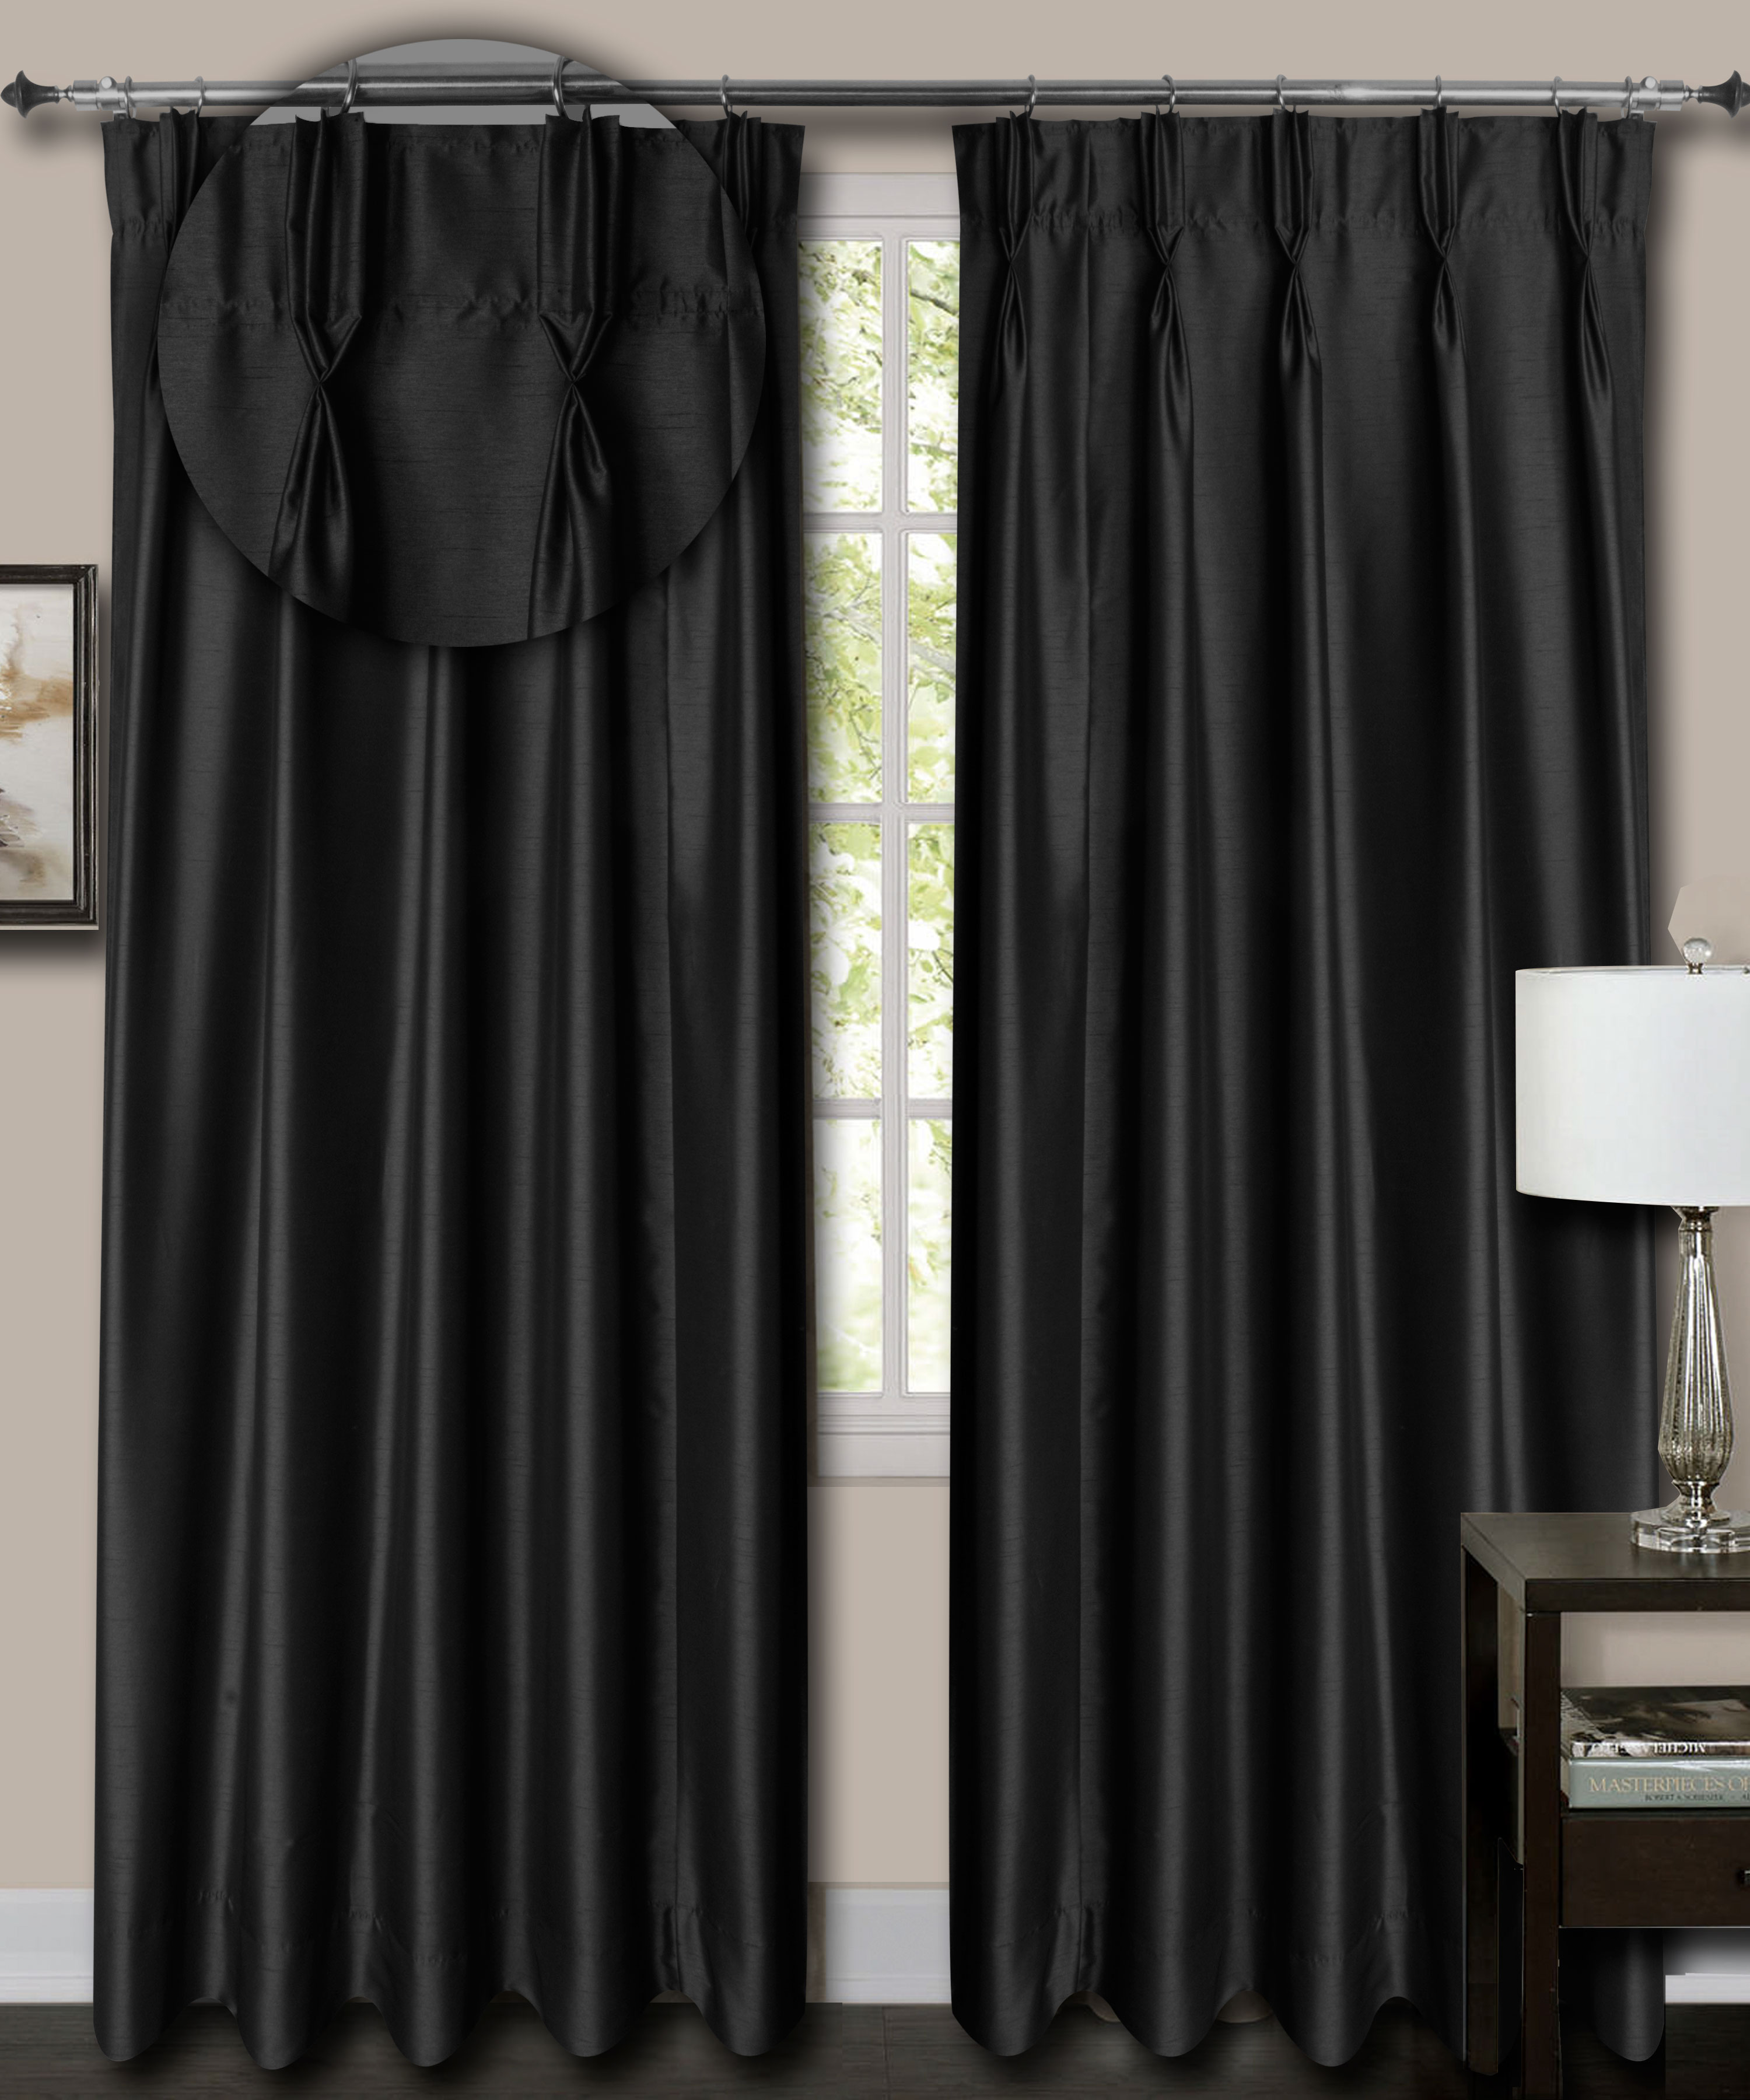 "French Pleat Top Black Faux Silk Dupioni Curtains. (78"" Wide, 8 Feet Long, Thick Lining)"